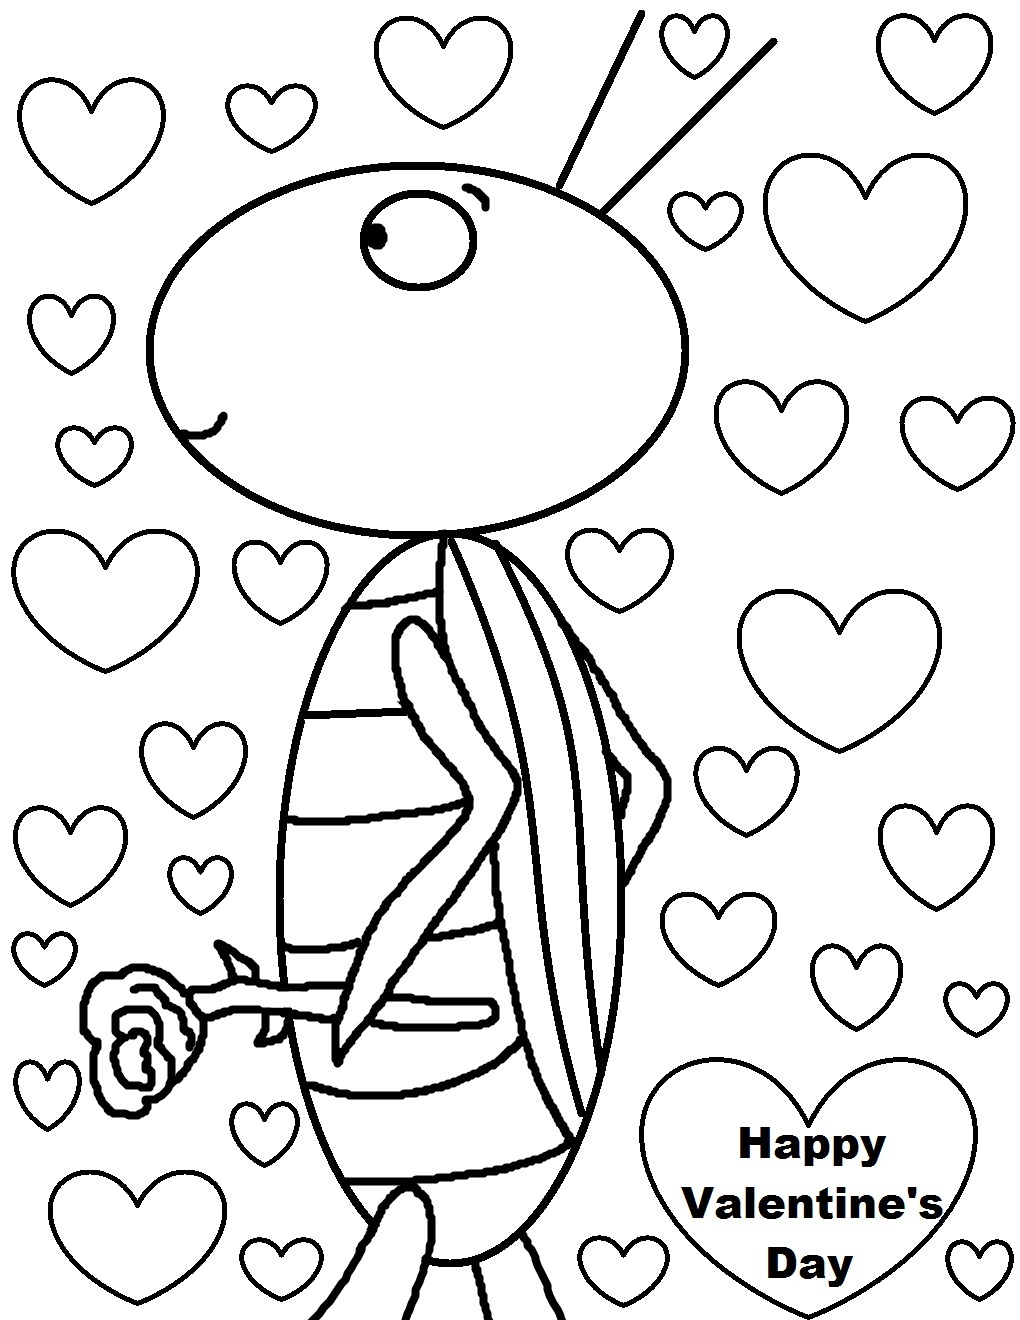 Coloring pages printable valentine's day - Valentine Coloring Page